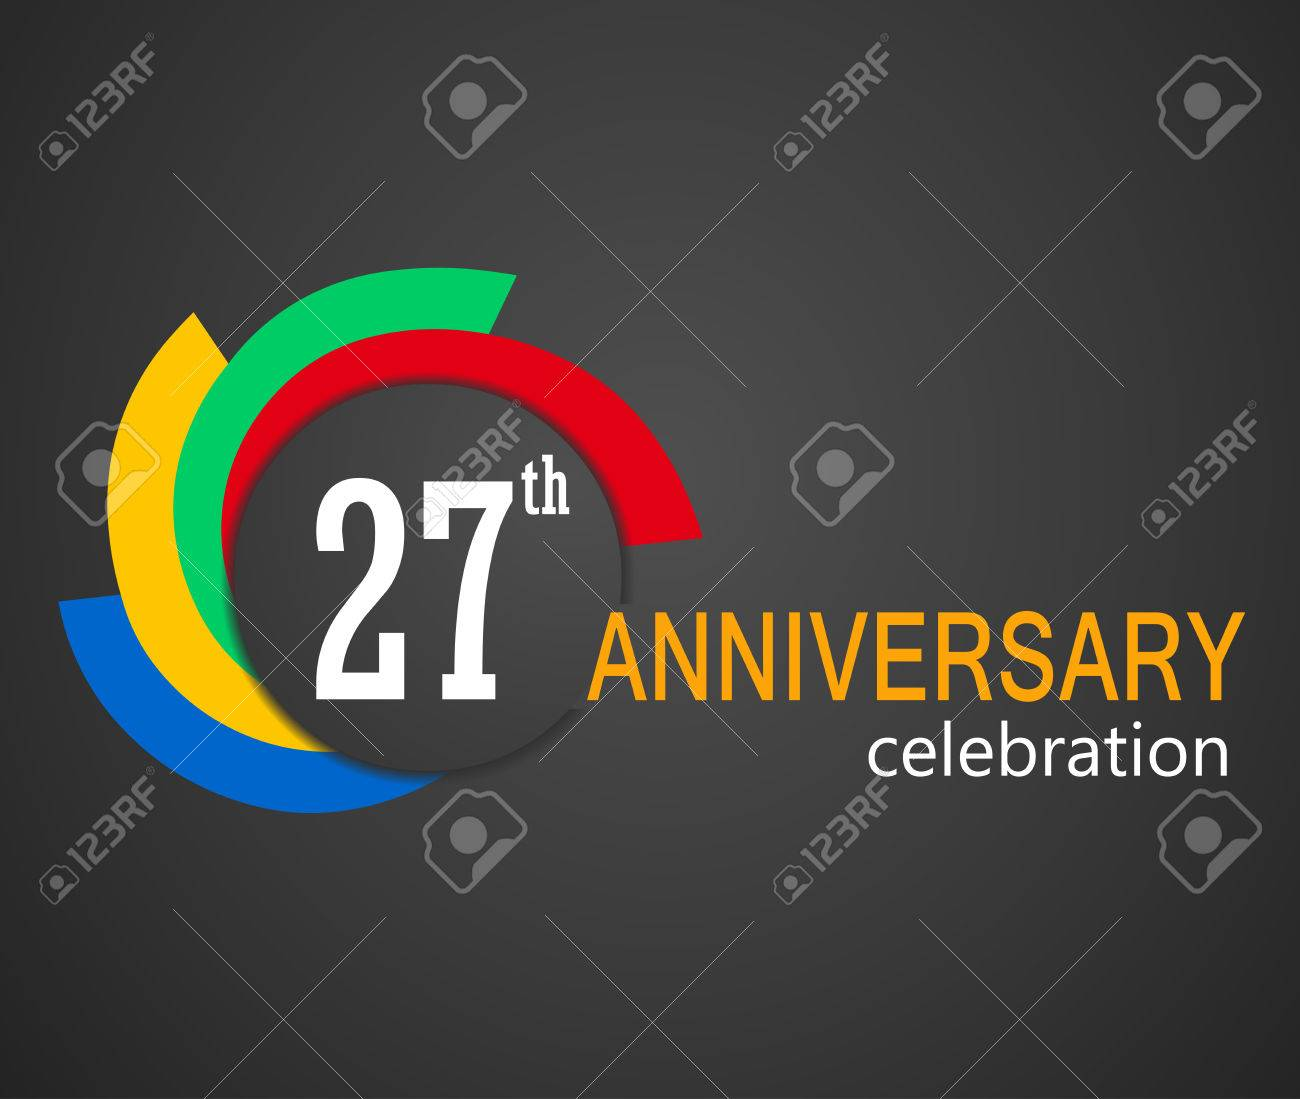 27th anniversary celebration background 27 years anniversary 27th anniversary celebration background 27 years anniversary card illustration vector eps10 stock vector biocorpaavc Images